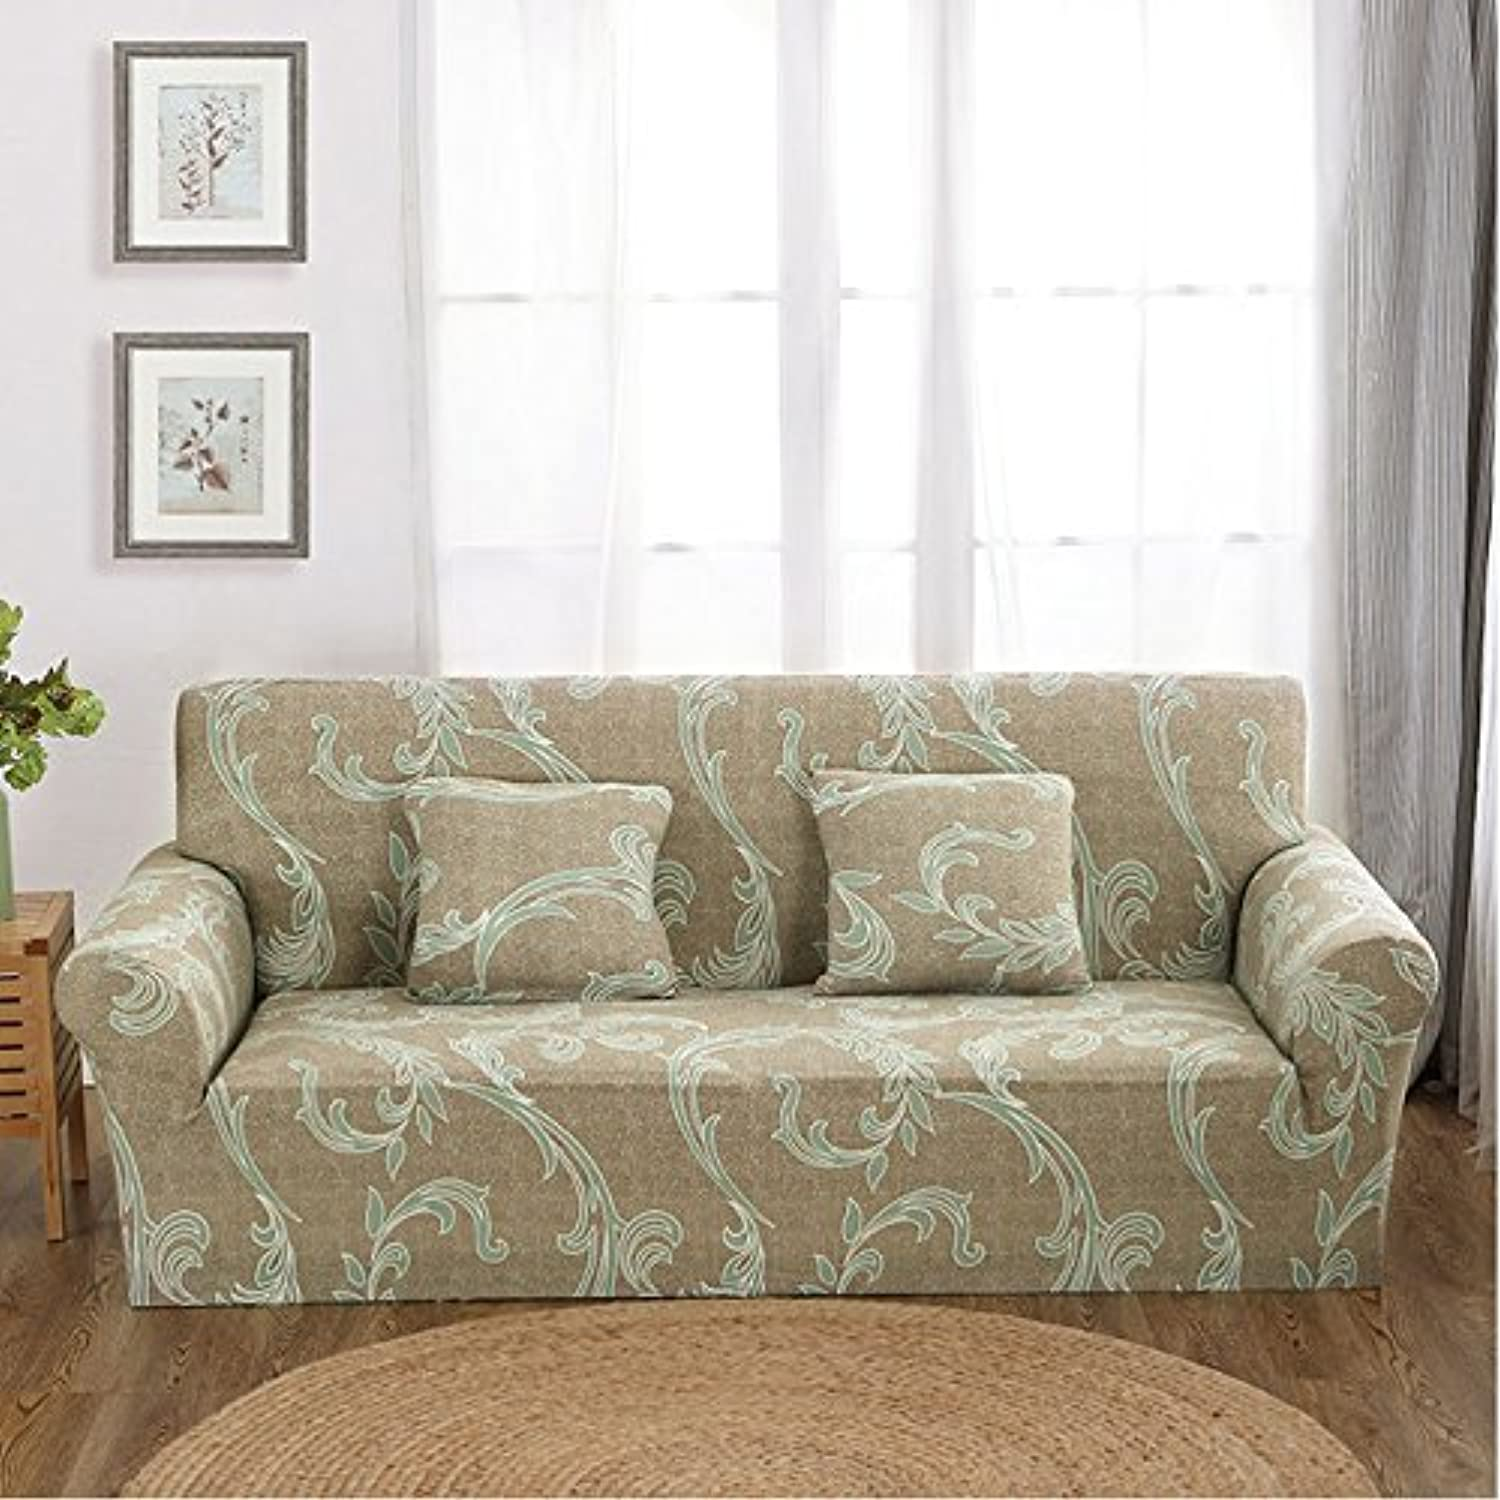 Farmerly 1pcs Flower Leaf Pattern Soft Stretch Sofa Cover Home Decor Spandex Furniture Covers Decoration Covering Hotel Slipcover 013   G, Two seat